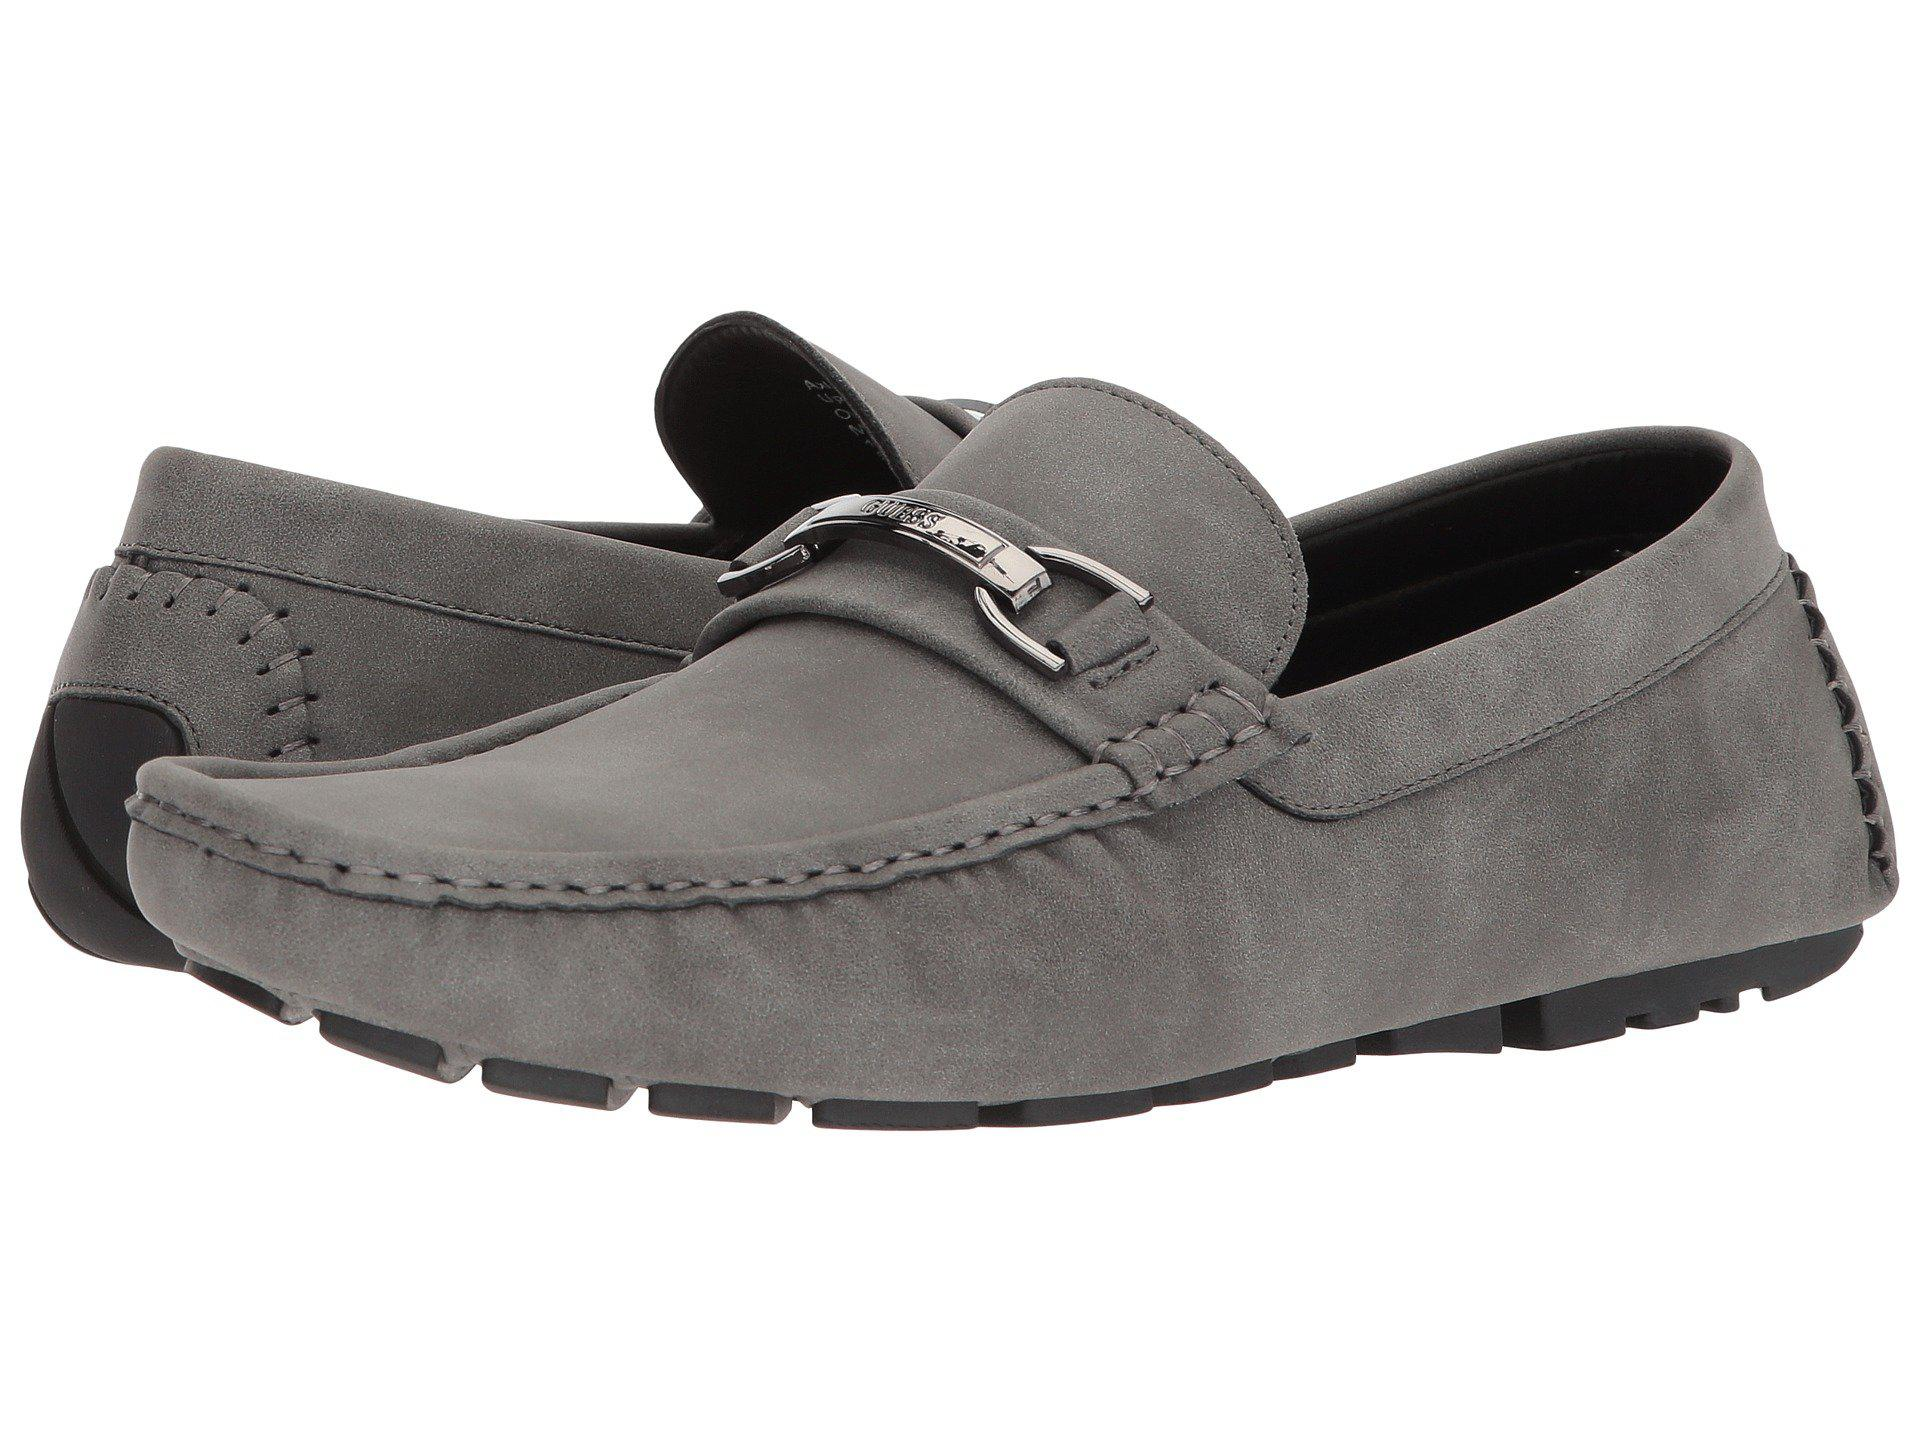 04bdc8eded0 Lyst - Guess Axle in Gray for Men - Save 31%